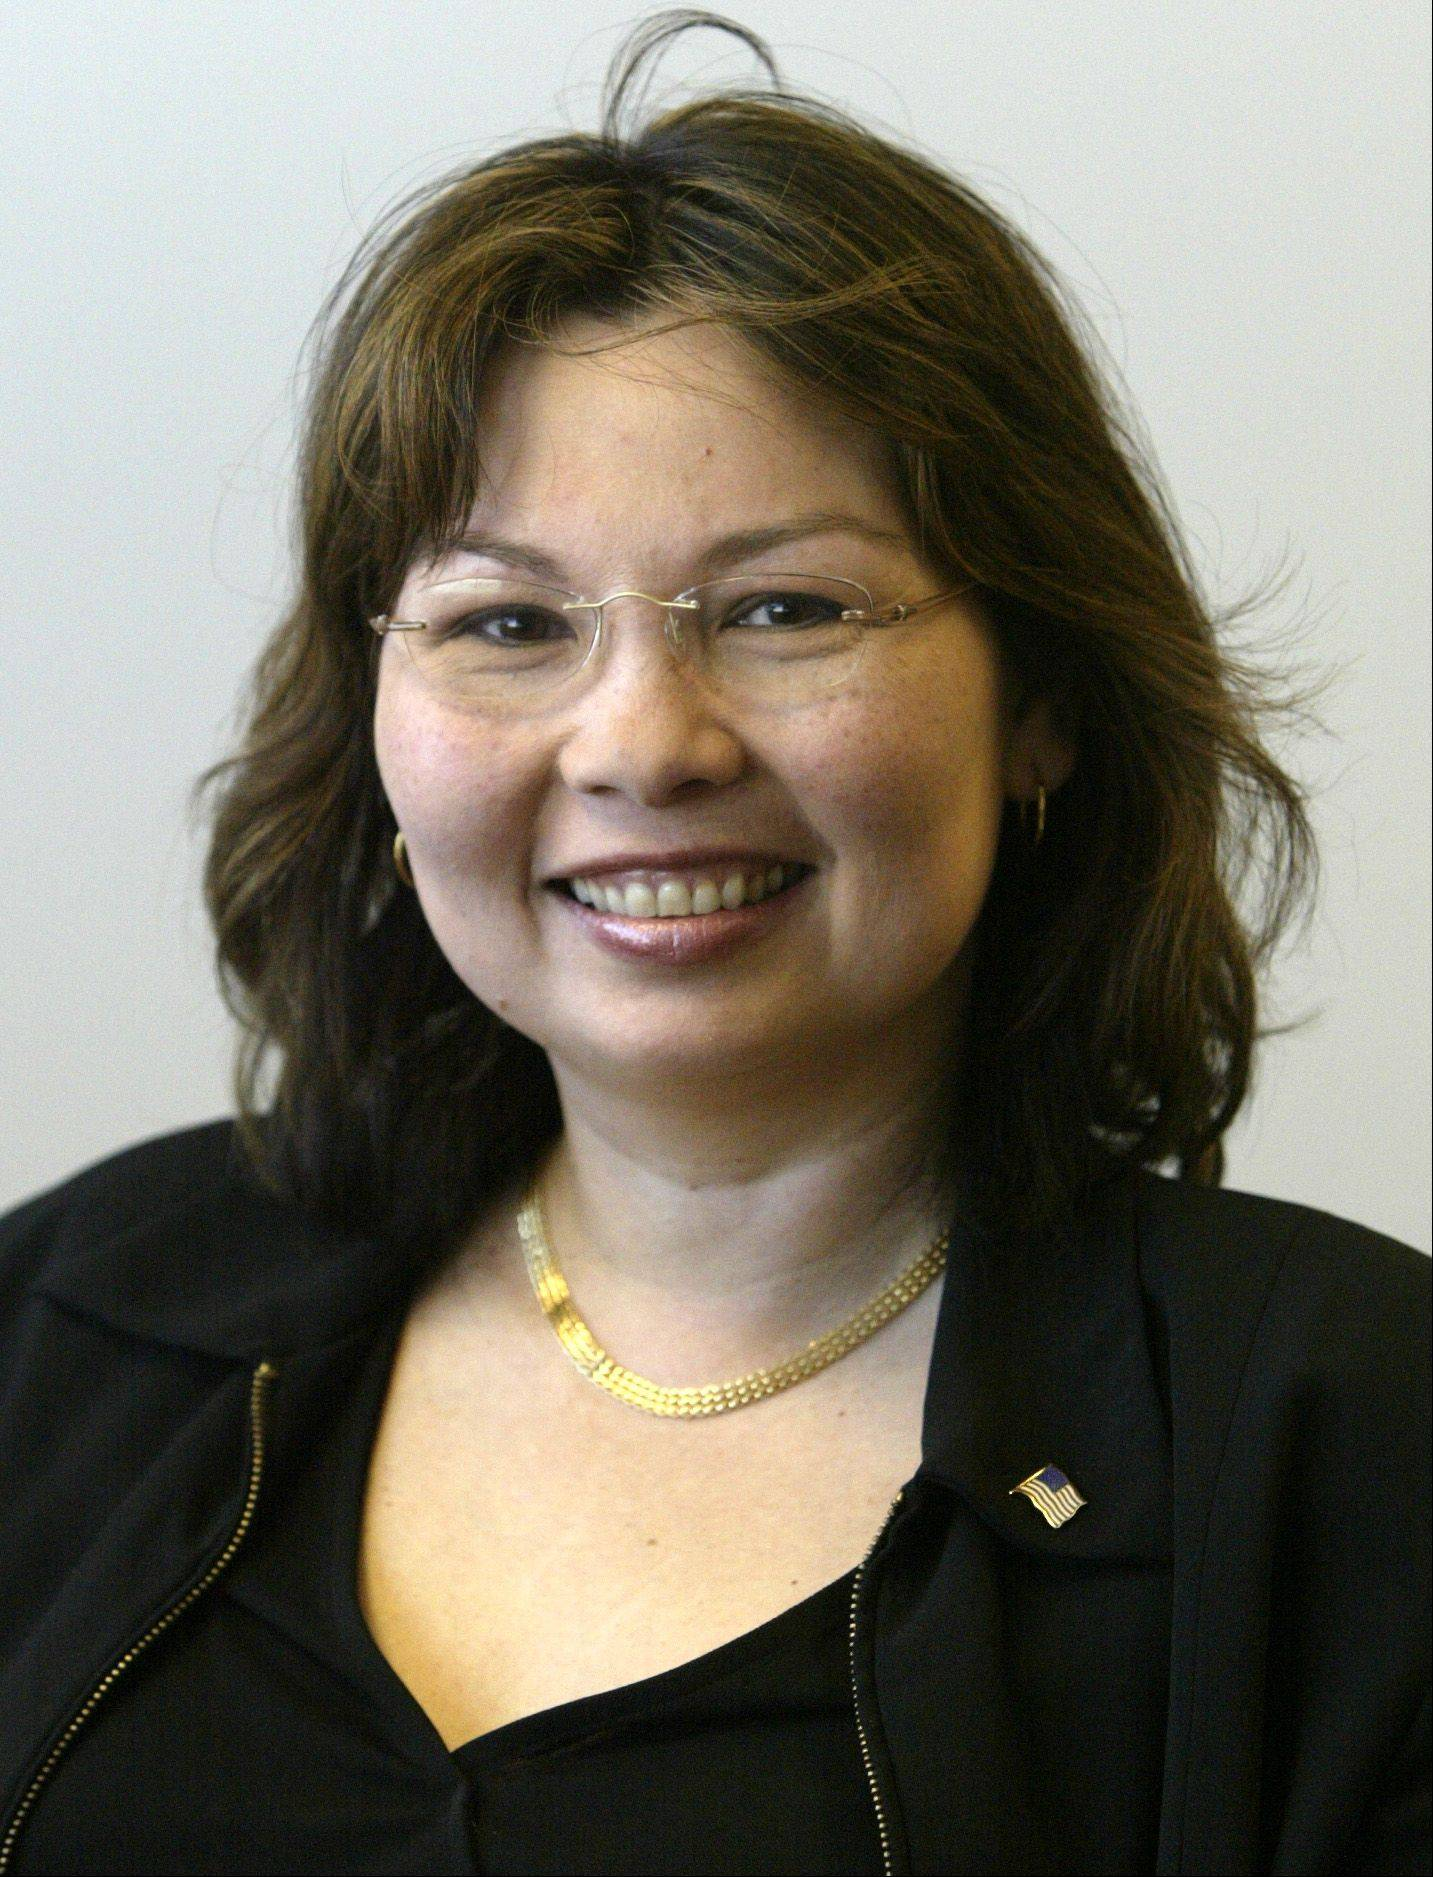 Tammy Duckworth, Democrat, candidate for 8th Congressional District.